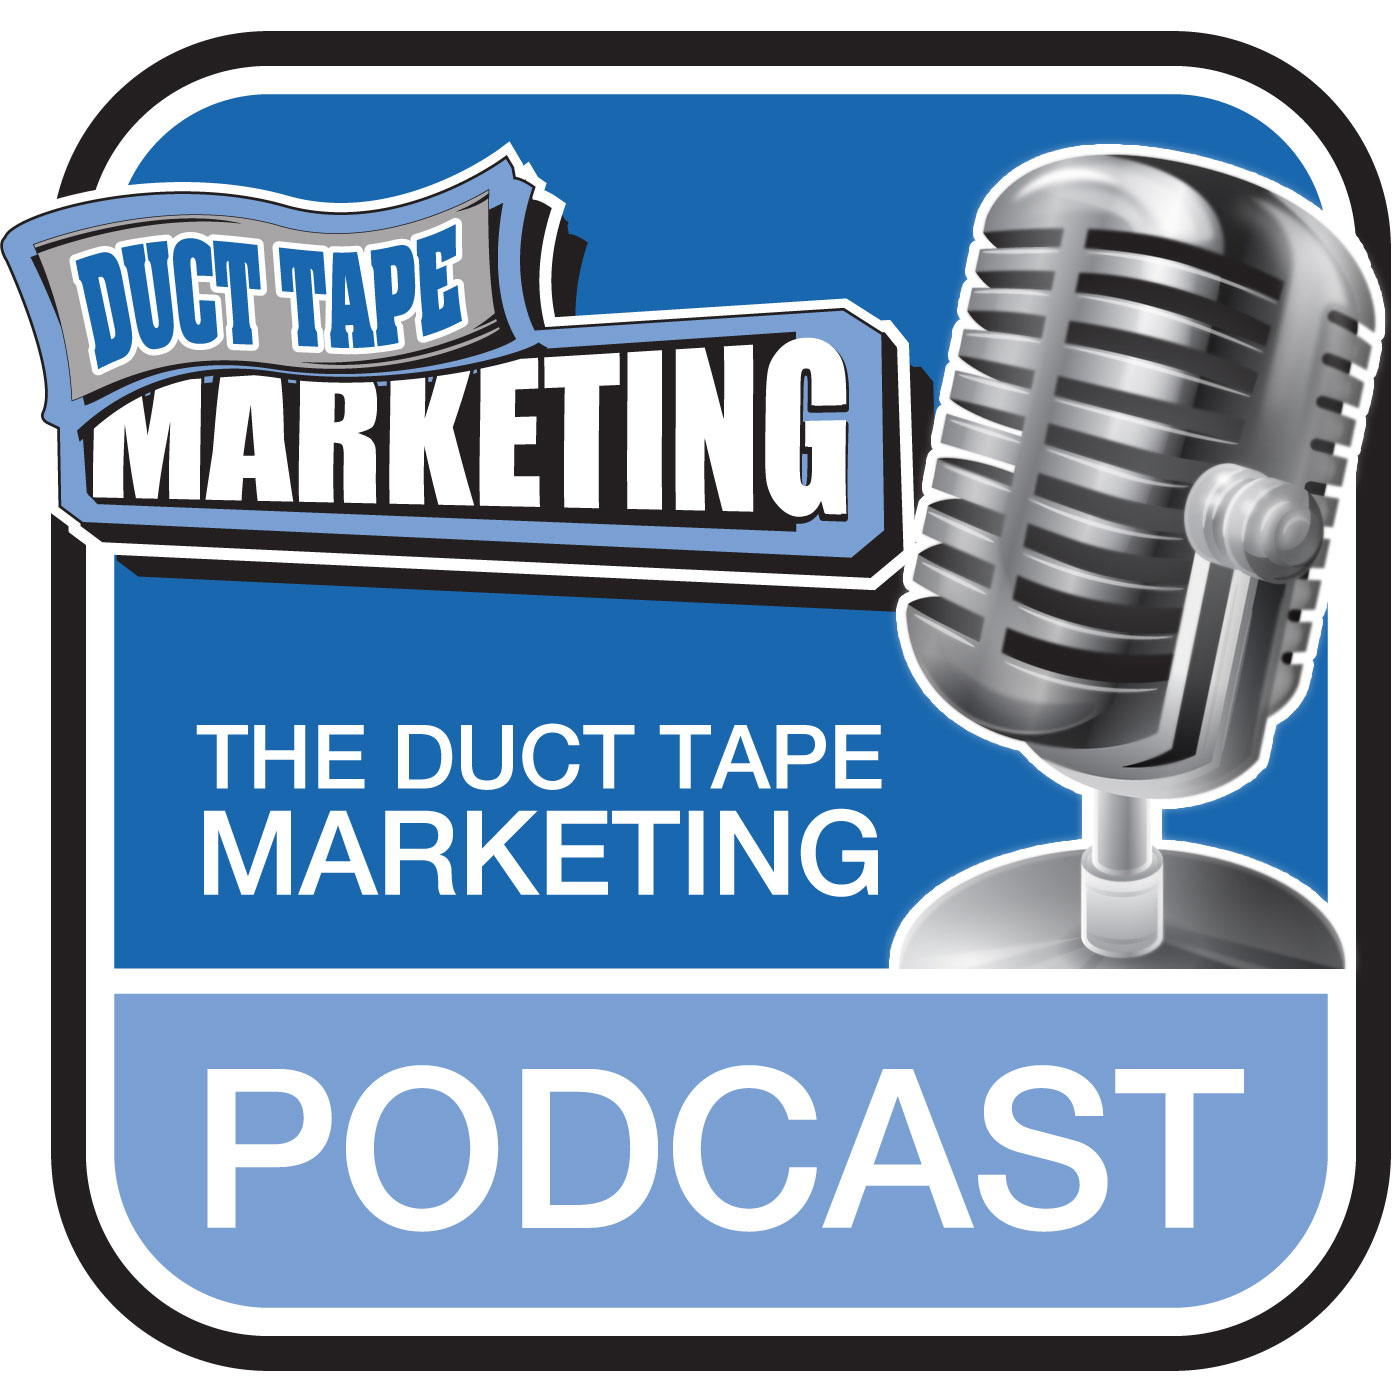 Ron Ploof on the Duct Tape Marketing Podcast with John Jantsch